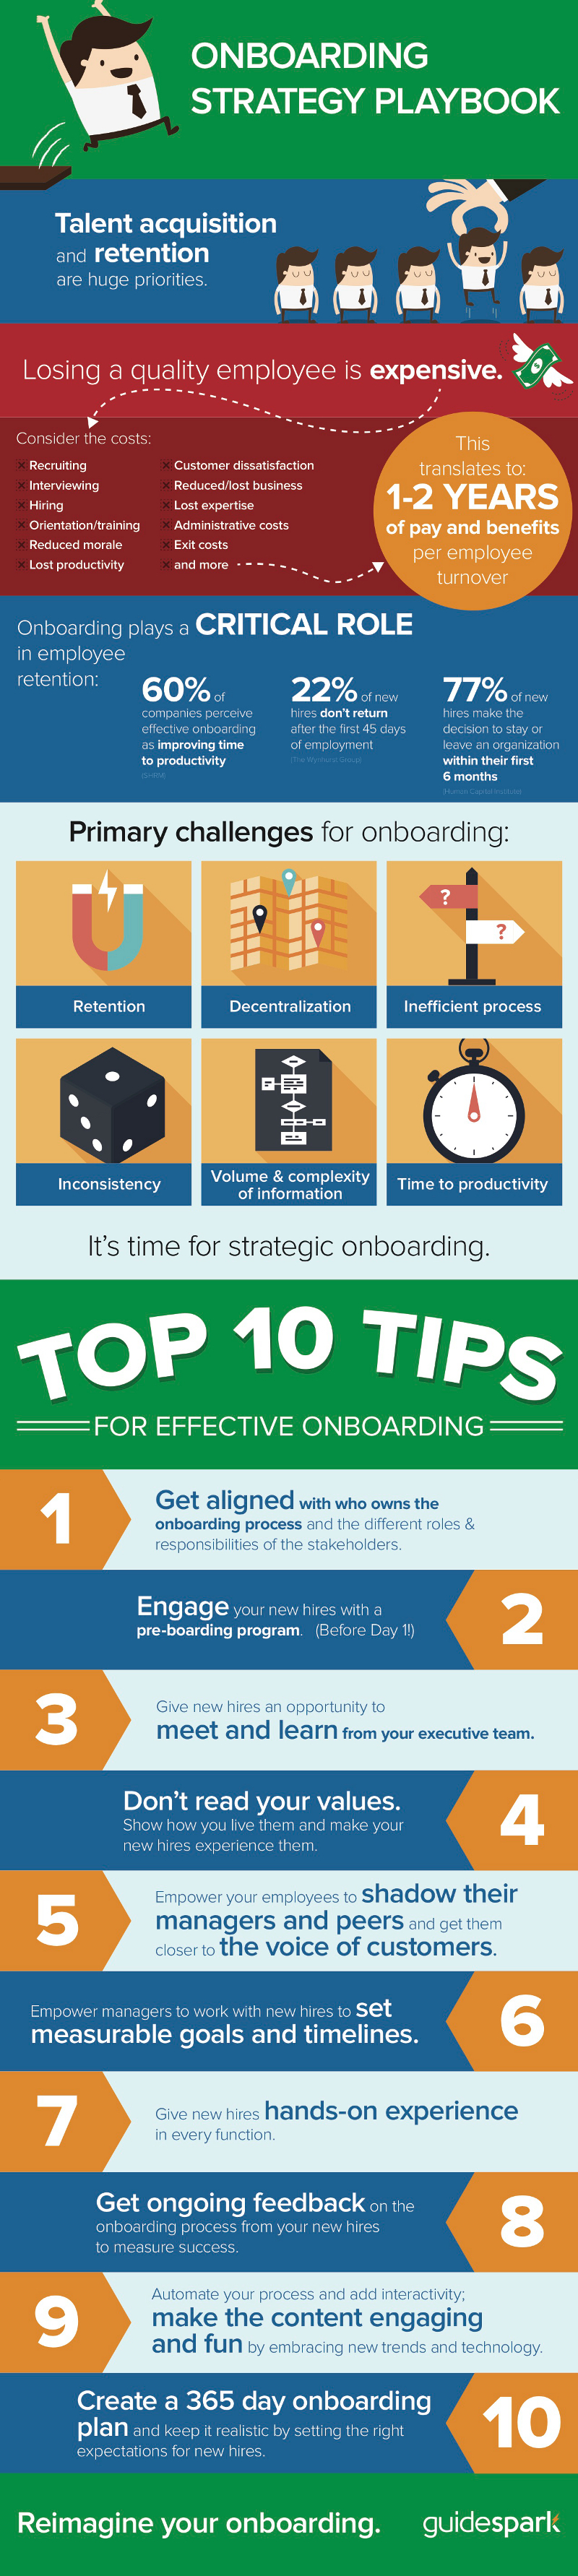 Onboarding Strategy Tips